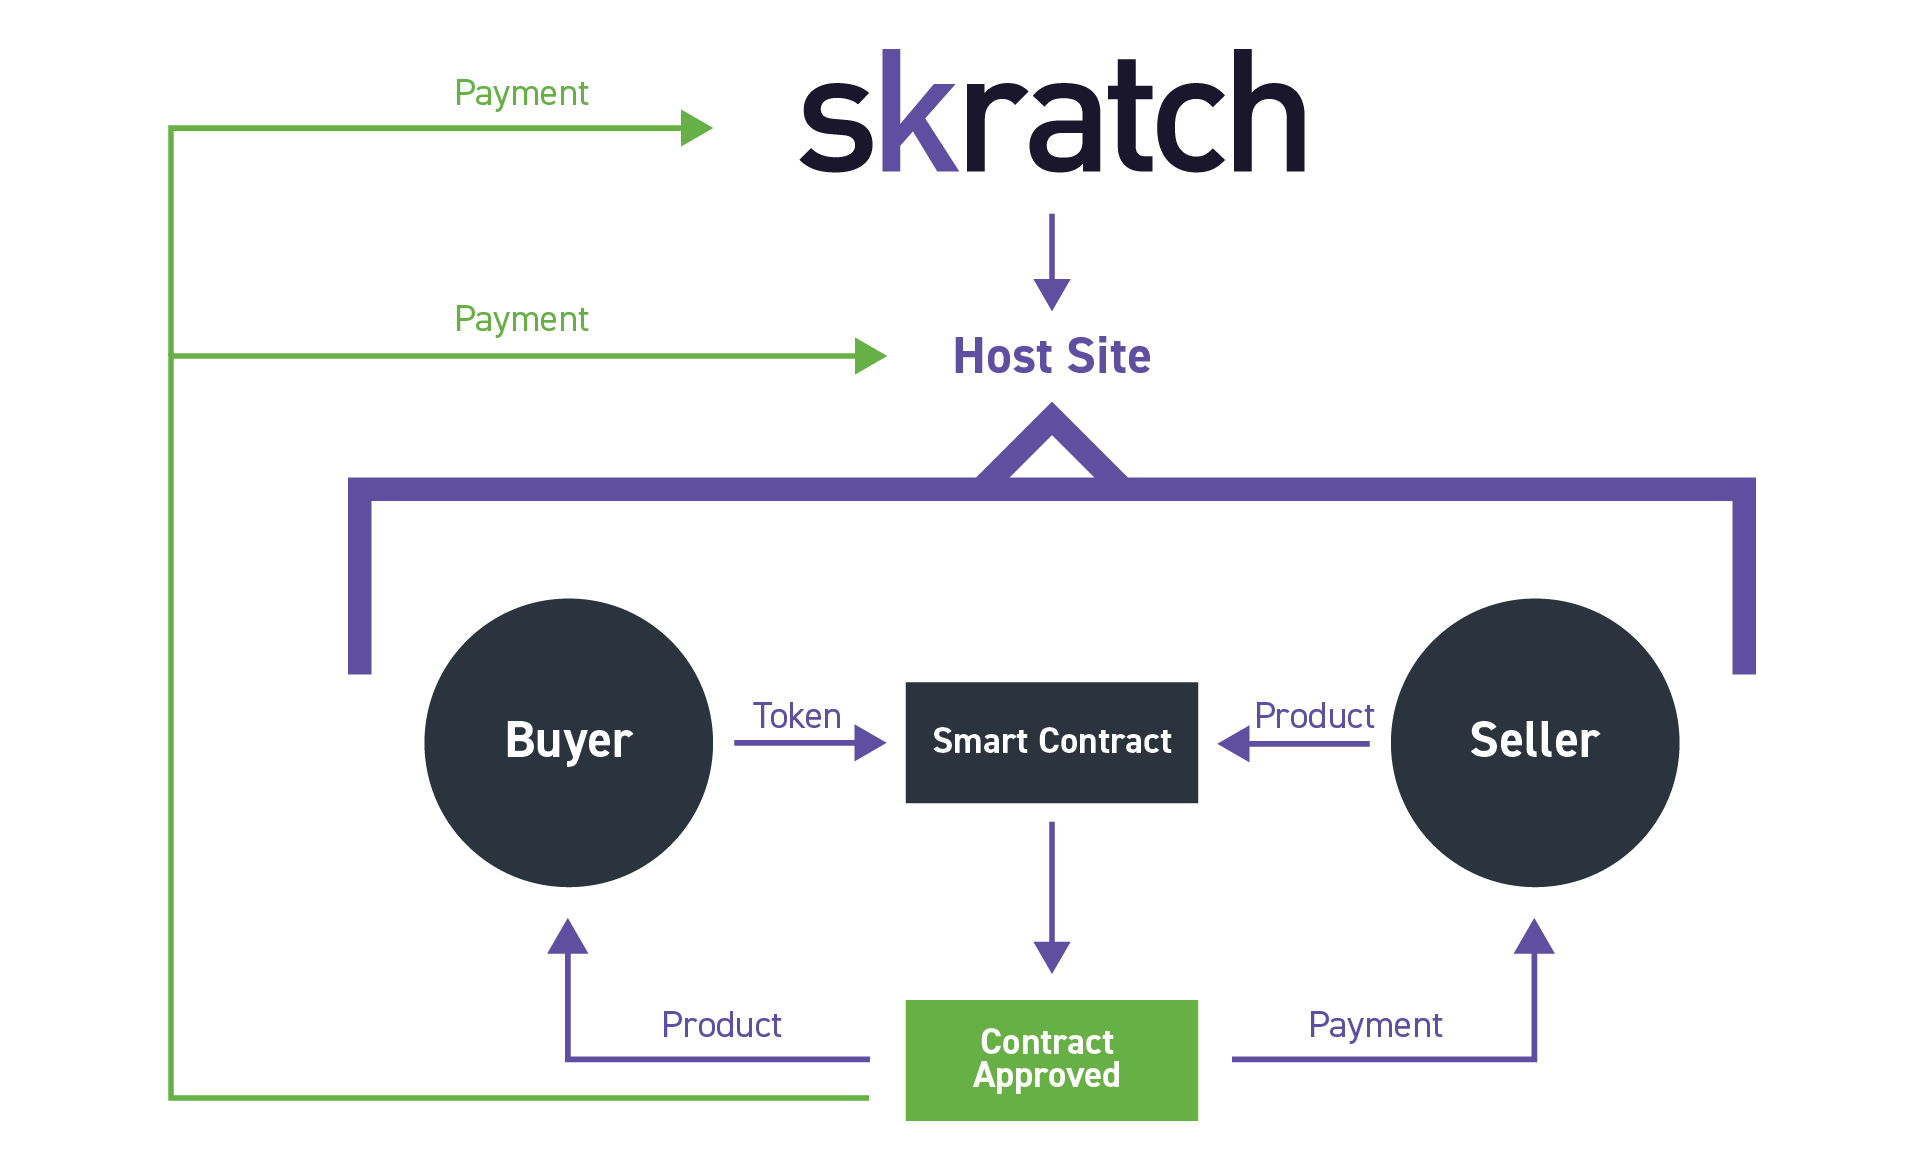 How Skratch works